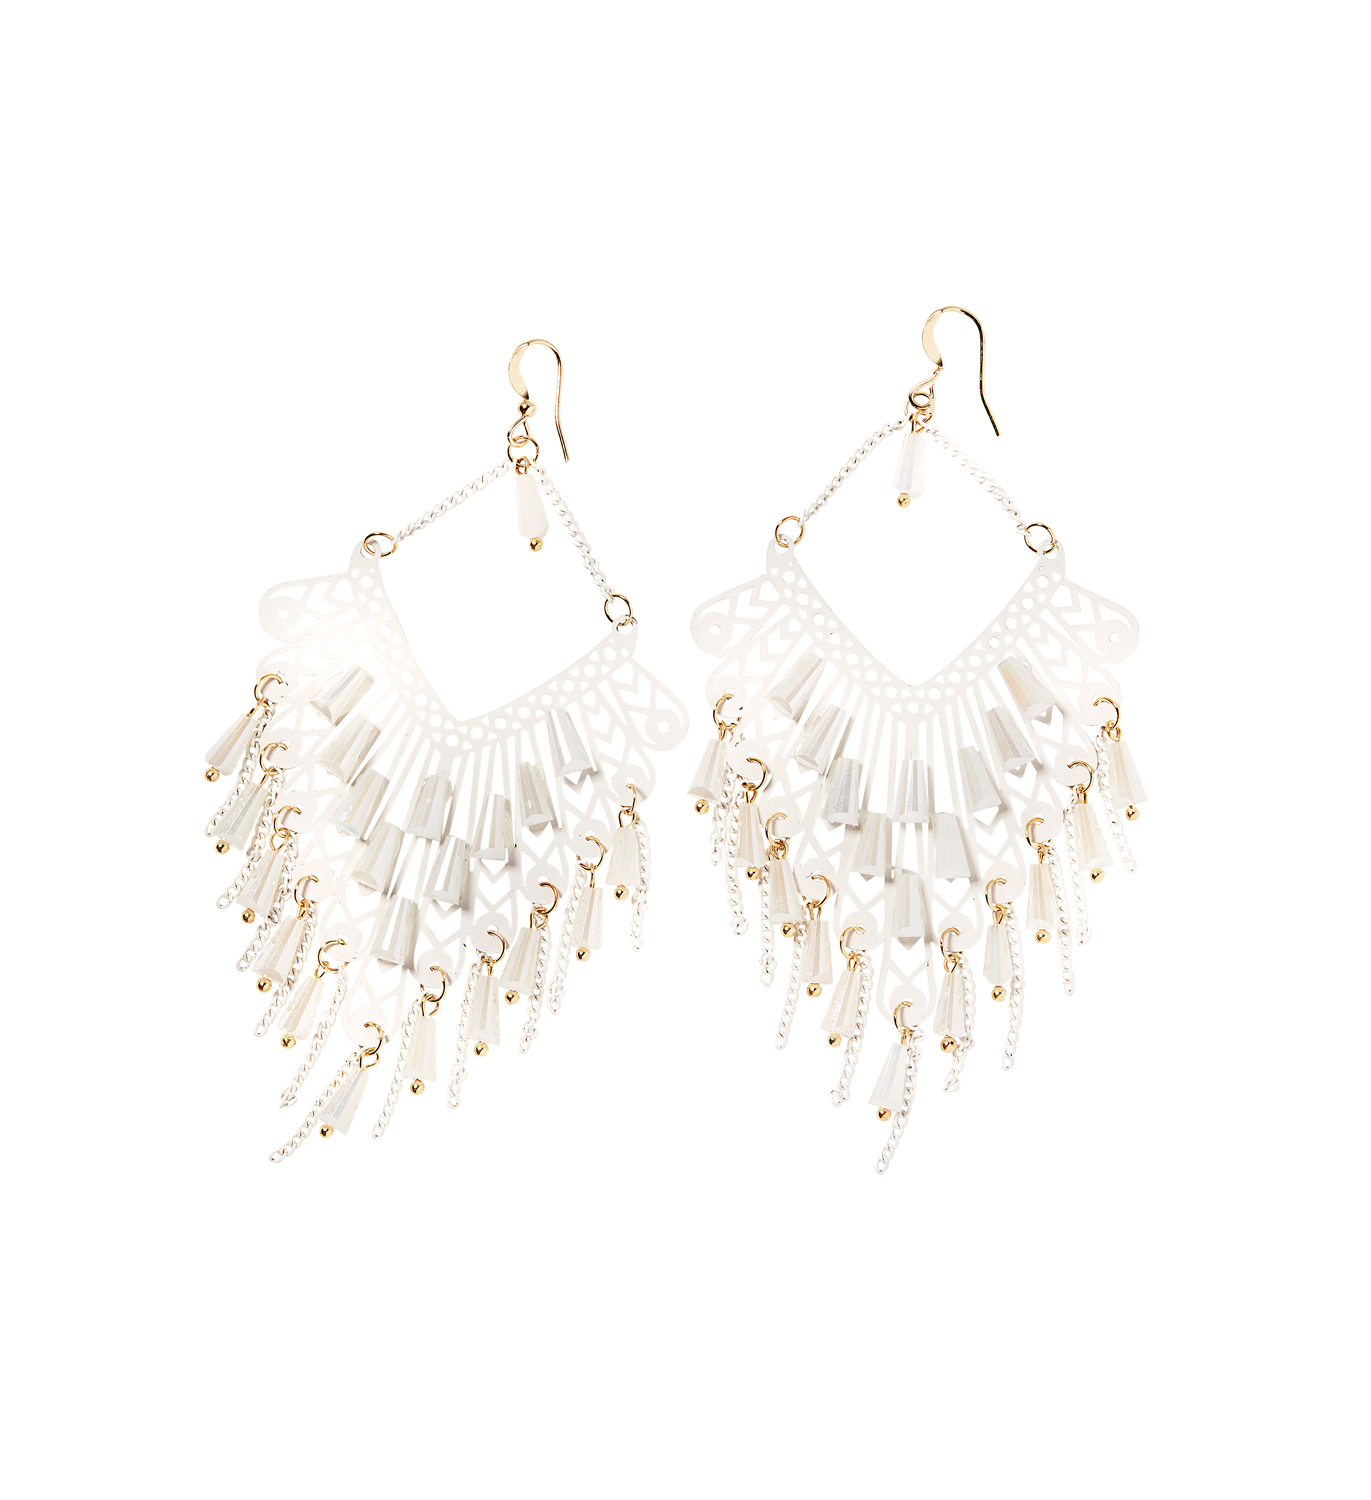 Grace Gonzalez New York Filigree Earrings